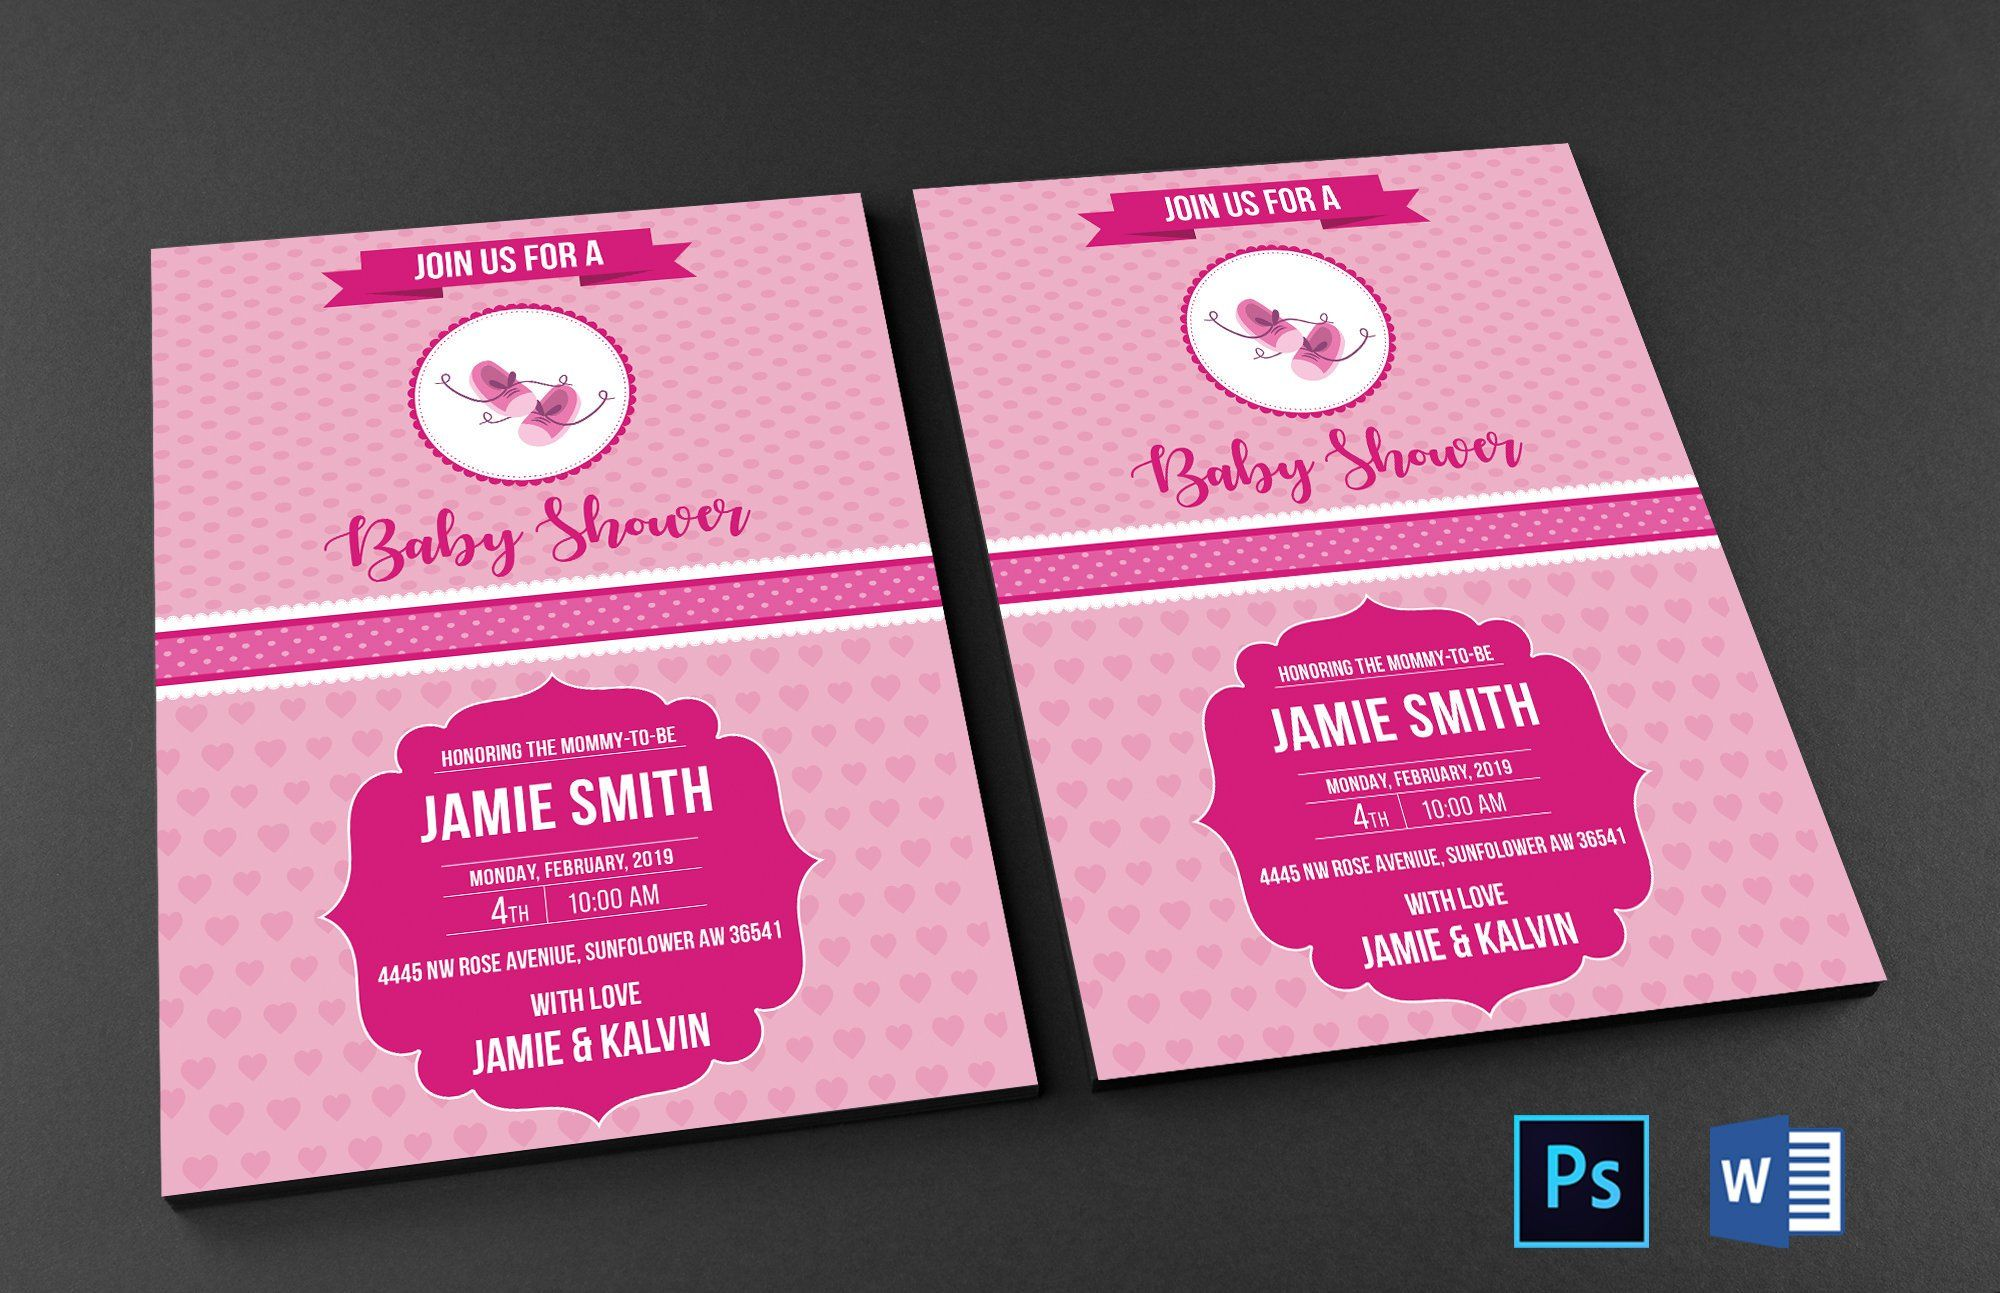 Pin By Designscozy On Baby Shower Template Baby Shower Invites For Girl Baby Shower Templates Baby Shower Invitations For Boys